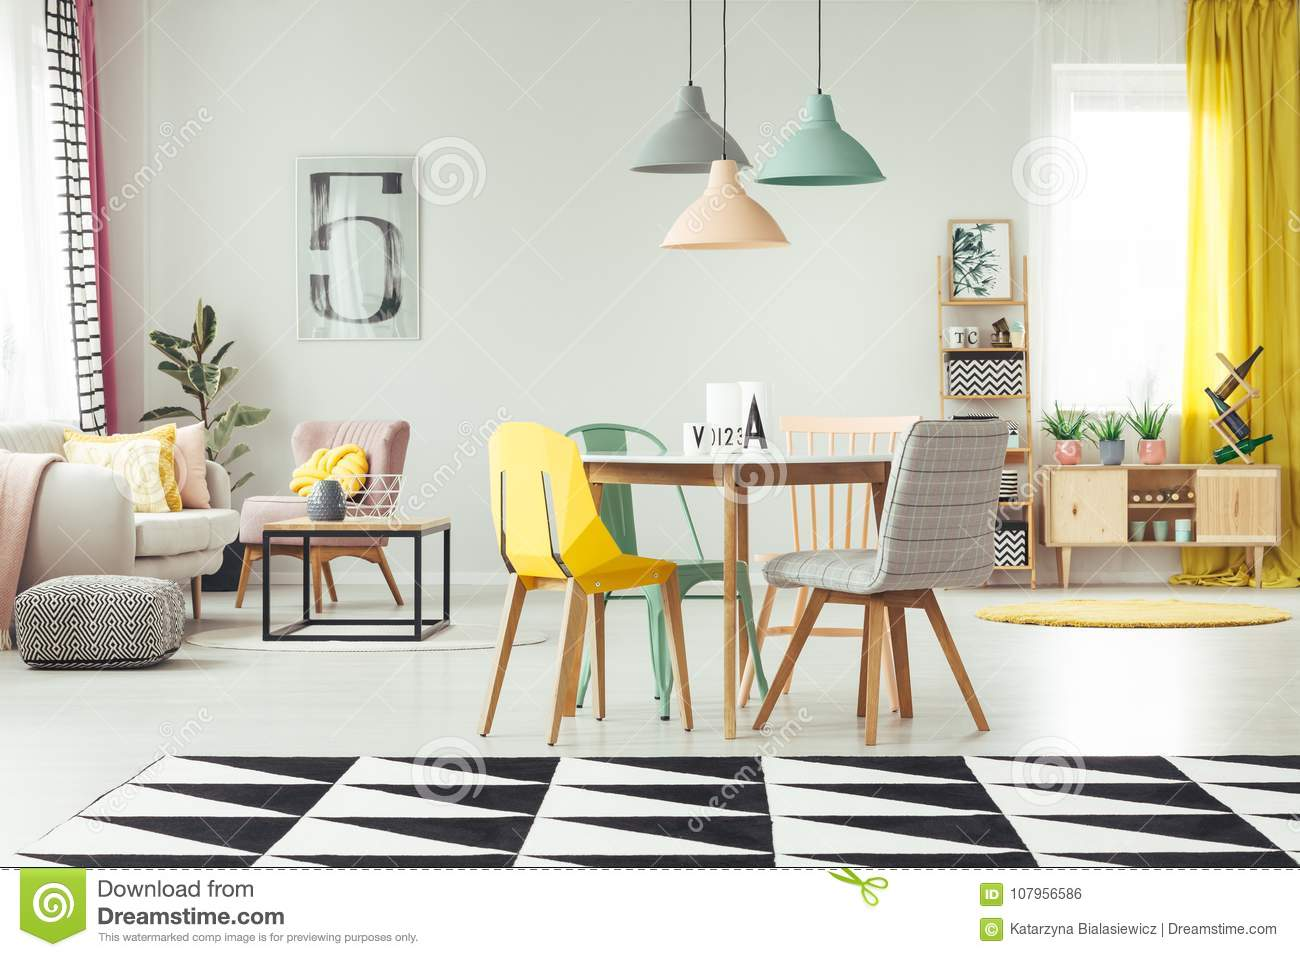 Tapis Salon Pastel Salon Confortable Jaune Photo Stock Image Du Tapis 107956586